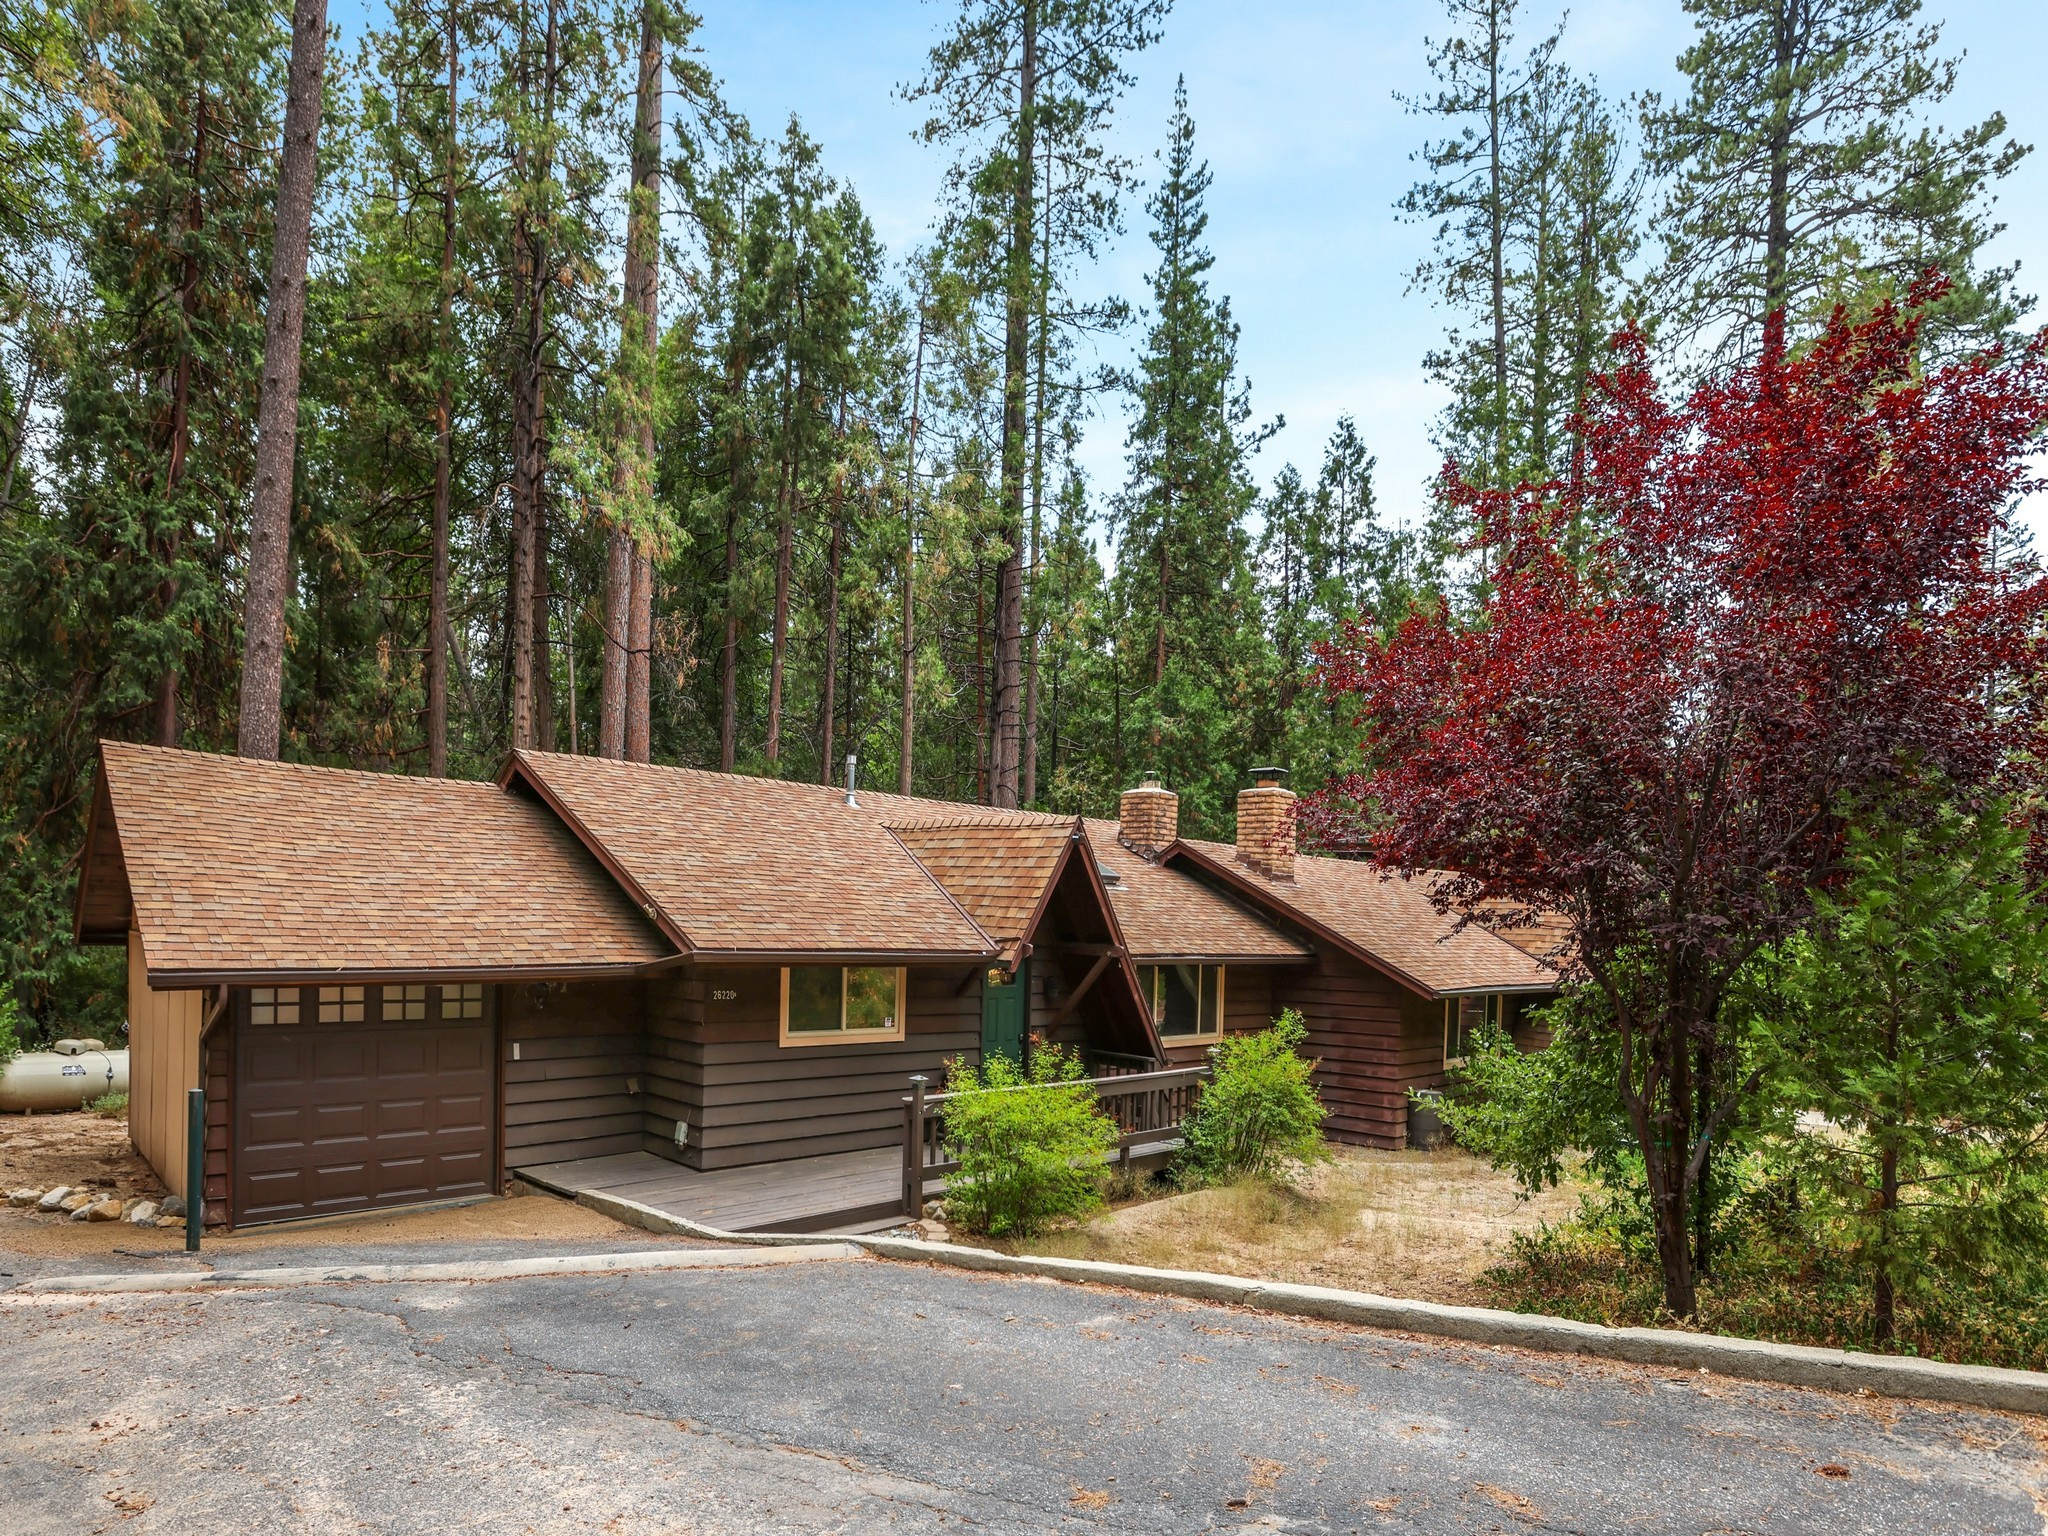 4-Bedroom House In Idyllwild Mountain Park